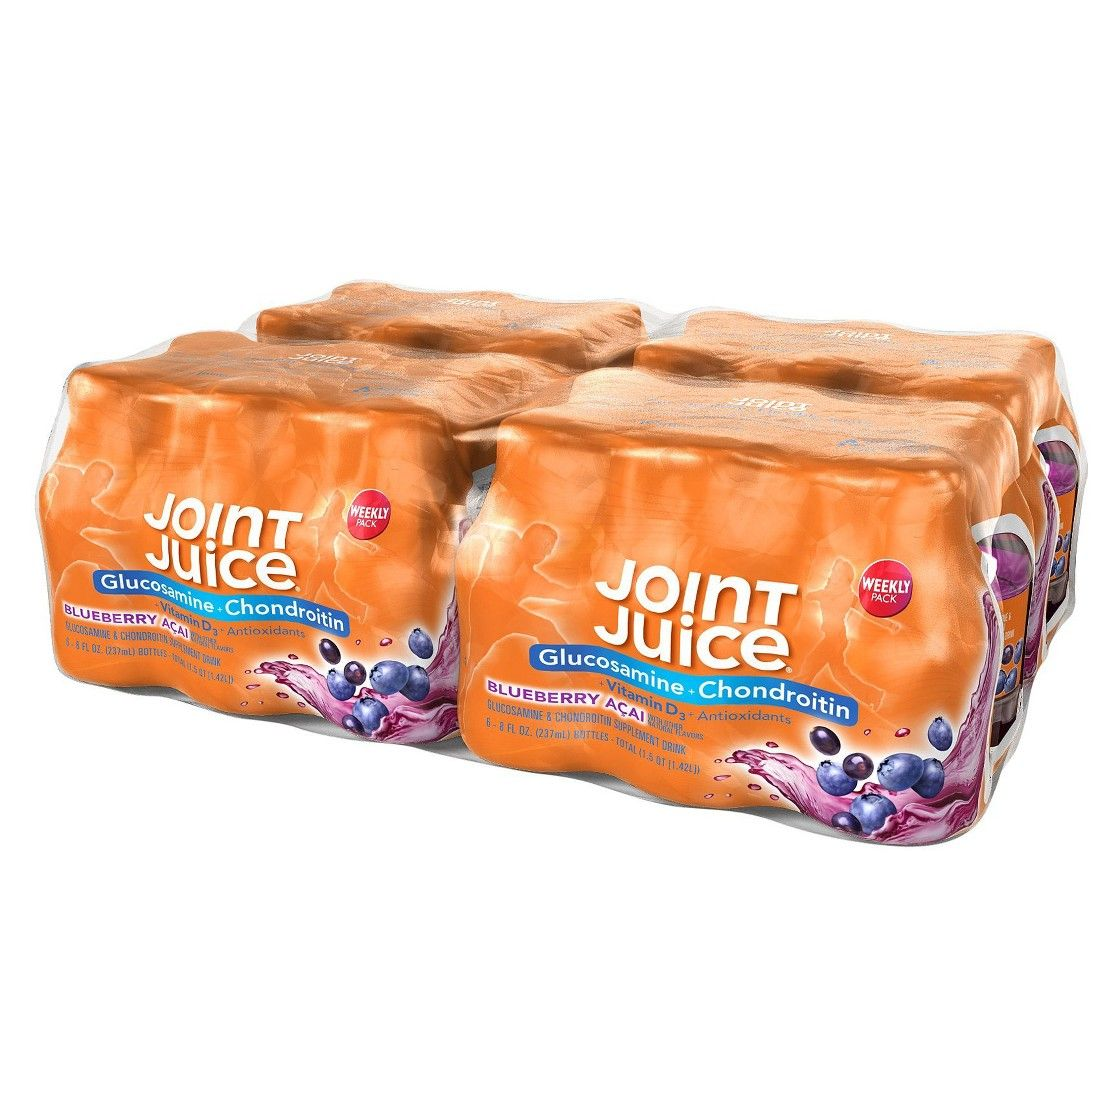 Joint Juice� Ready-to-Drink supplement - 24 pack Blueberry Acai